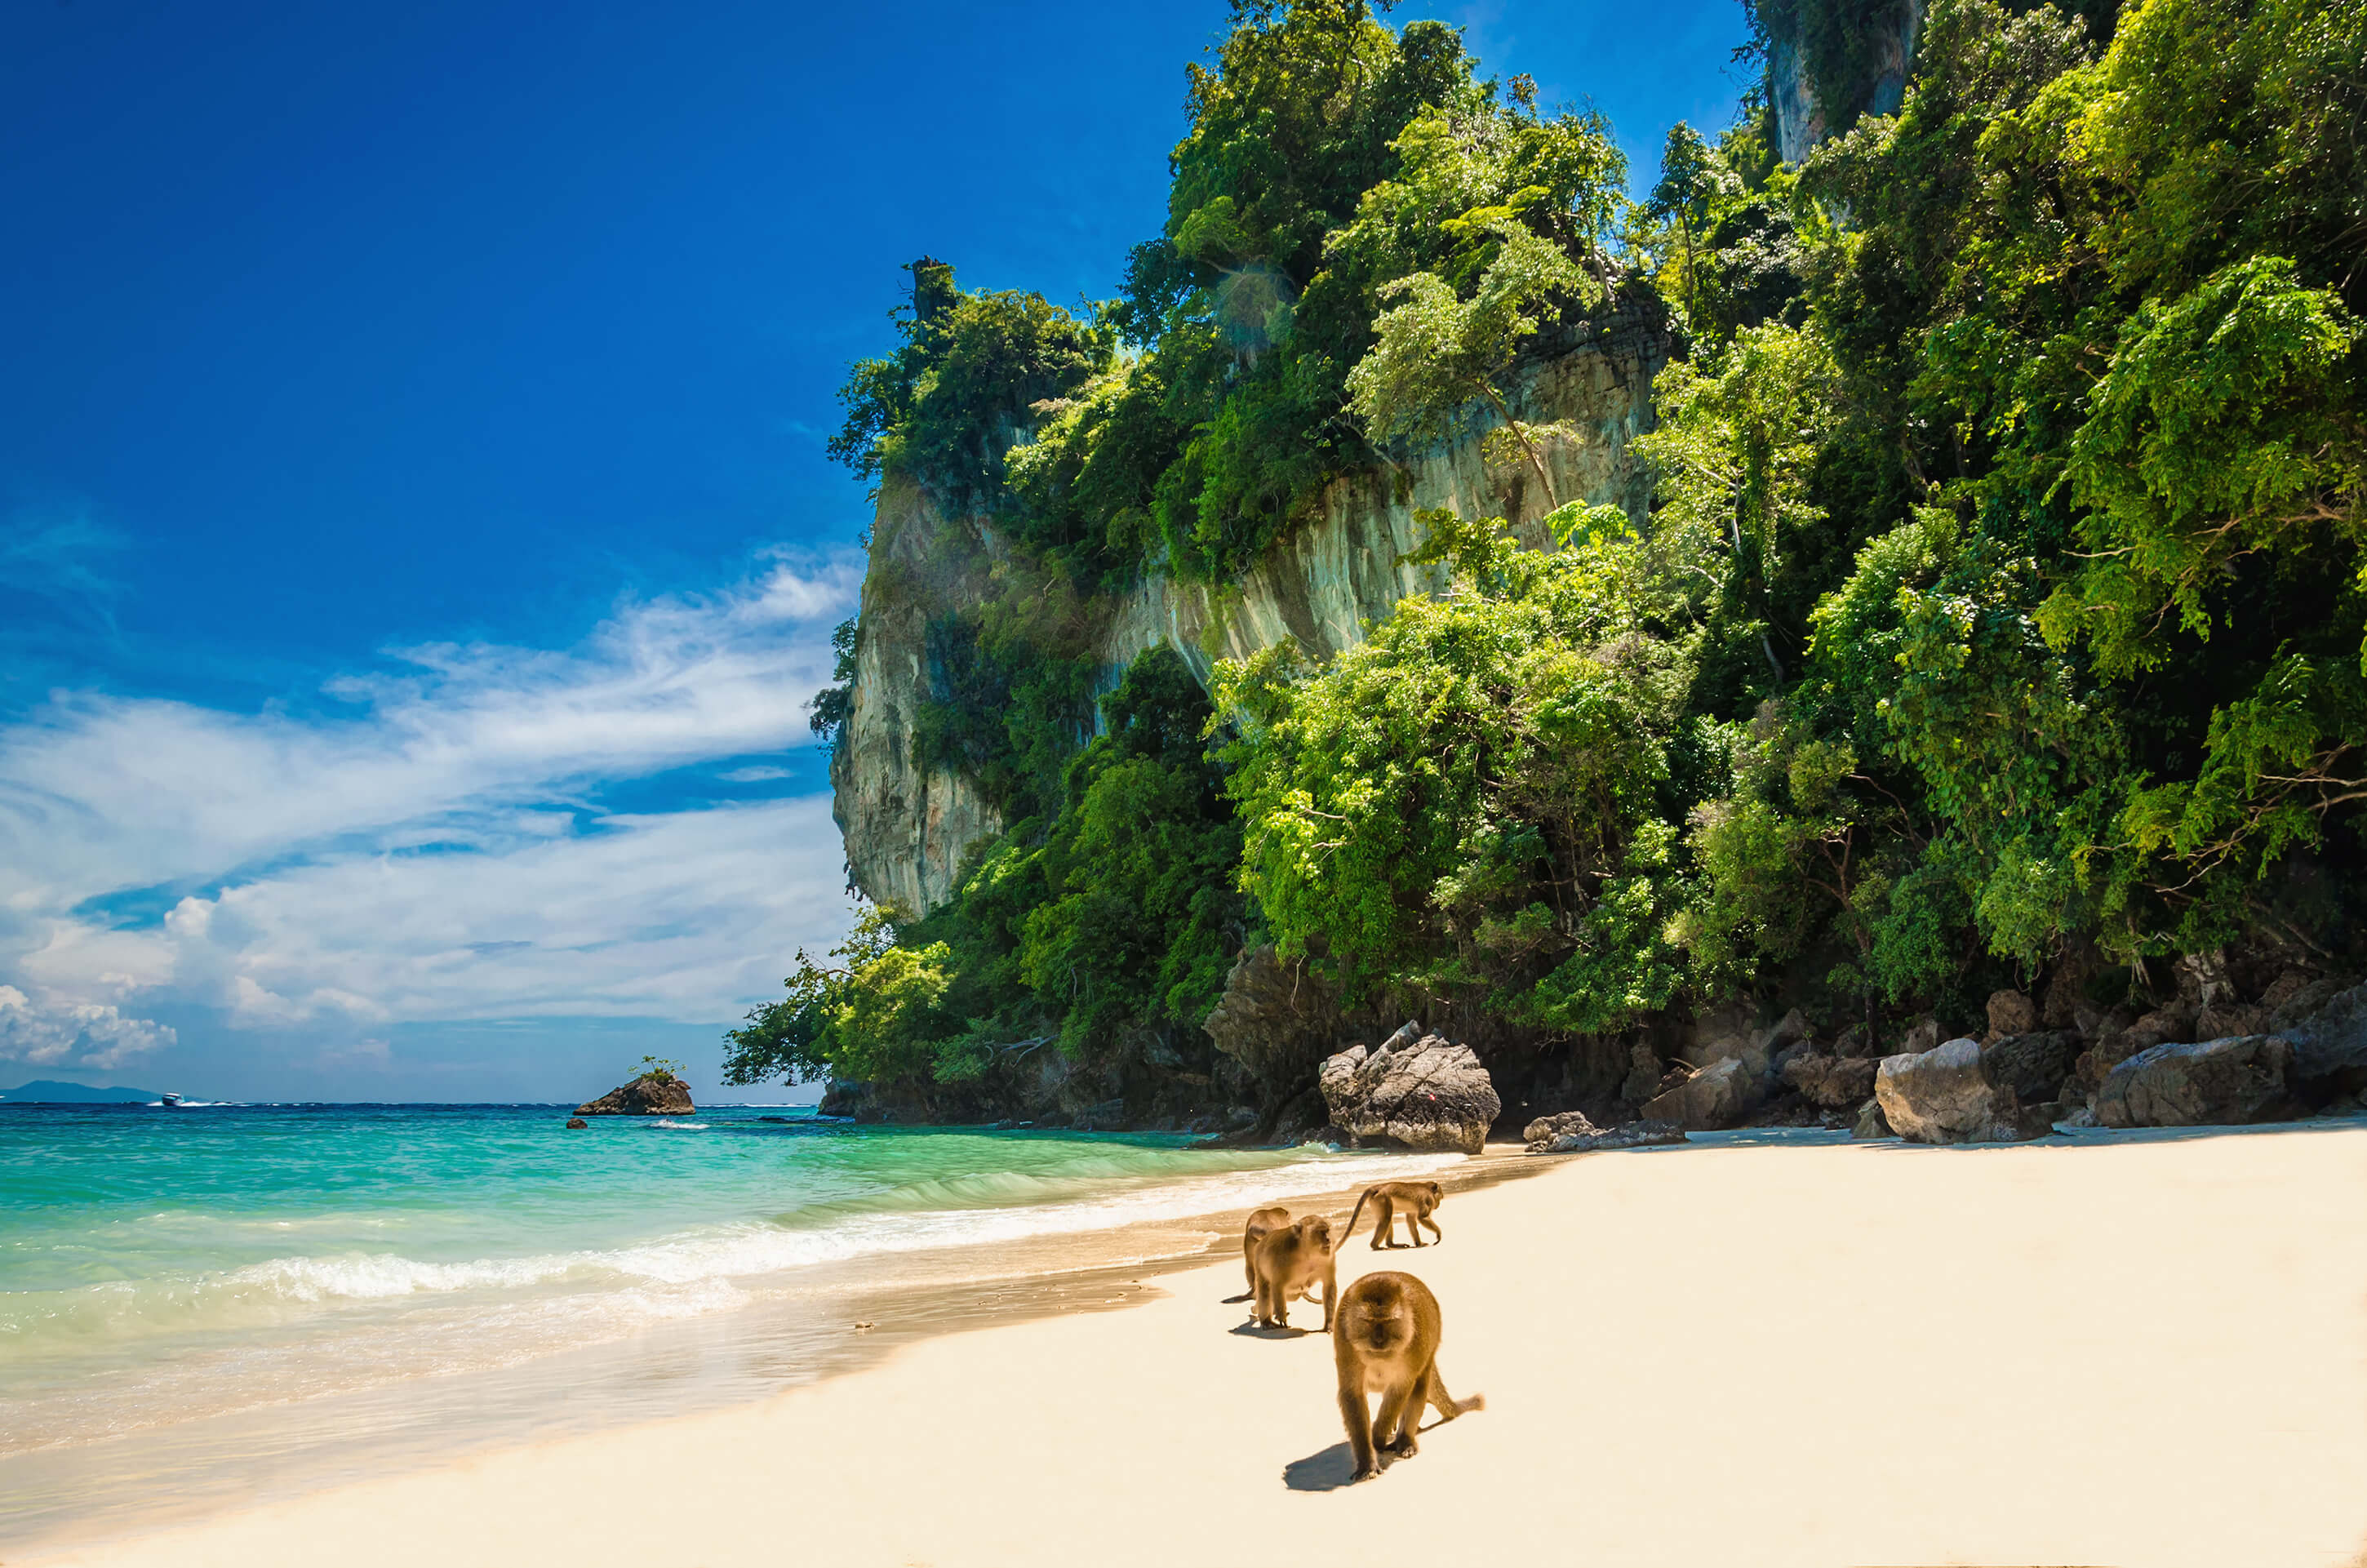 Monkeys in Phi Phi Island - top 7 islands in Thailand